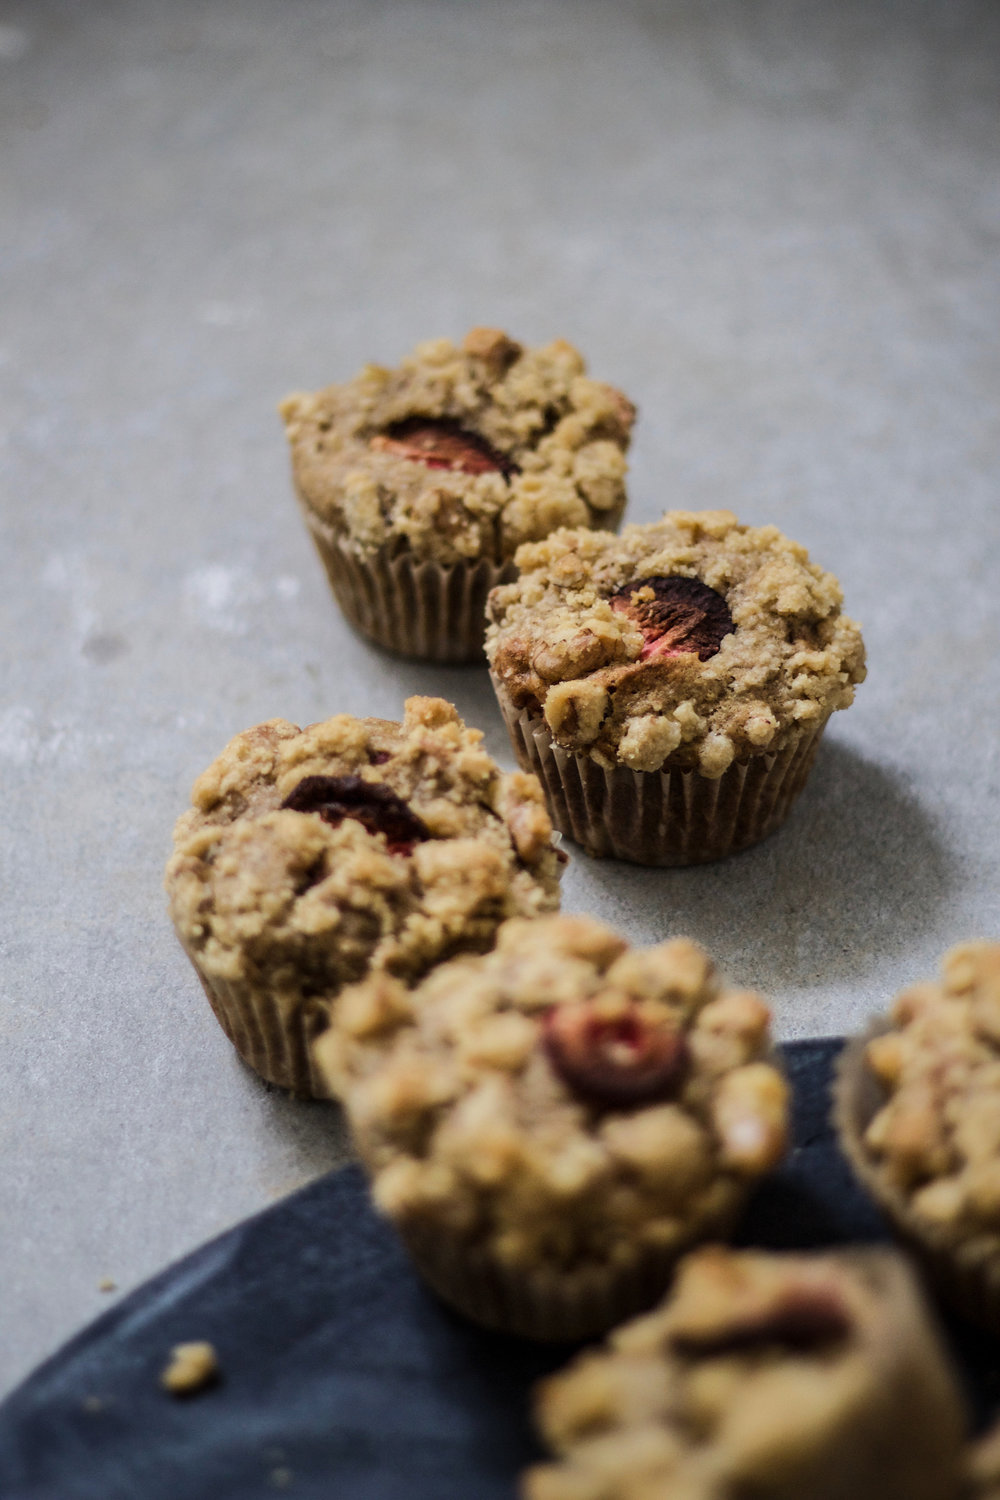 Strawberry banana nut muffins 7.jpg